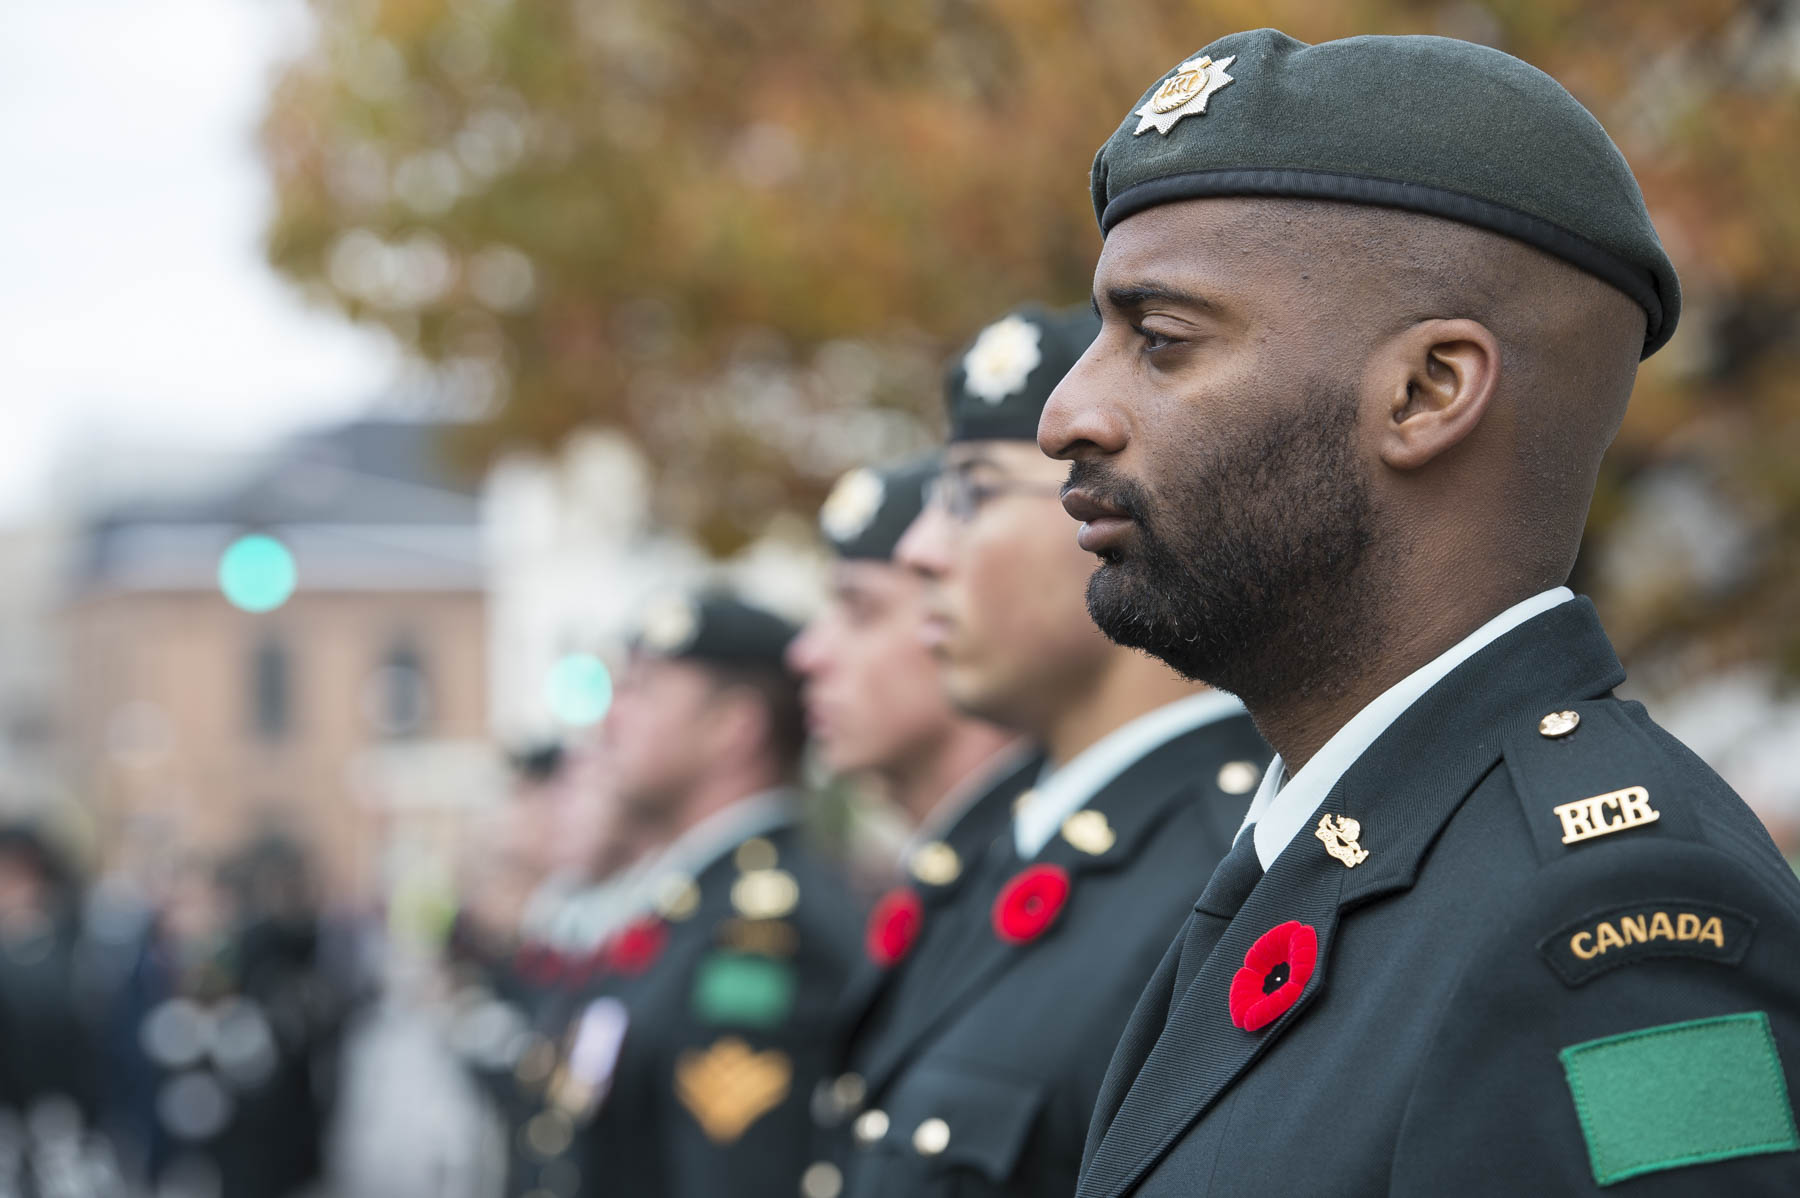 During the ceremony the Governor General received military honours, including a 100-person guard of honour, the Vice Regal Salute and a 21-gun salute from The 2nd Battalion, The Royal Canadian Regiment, and The Royal Regiment of Canadian Artillery School.